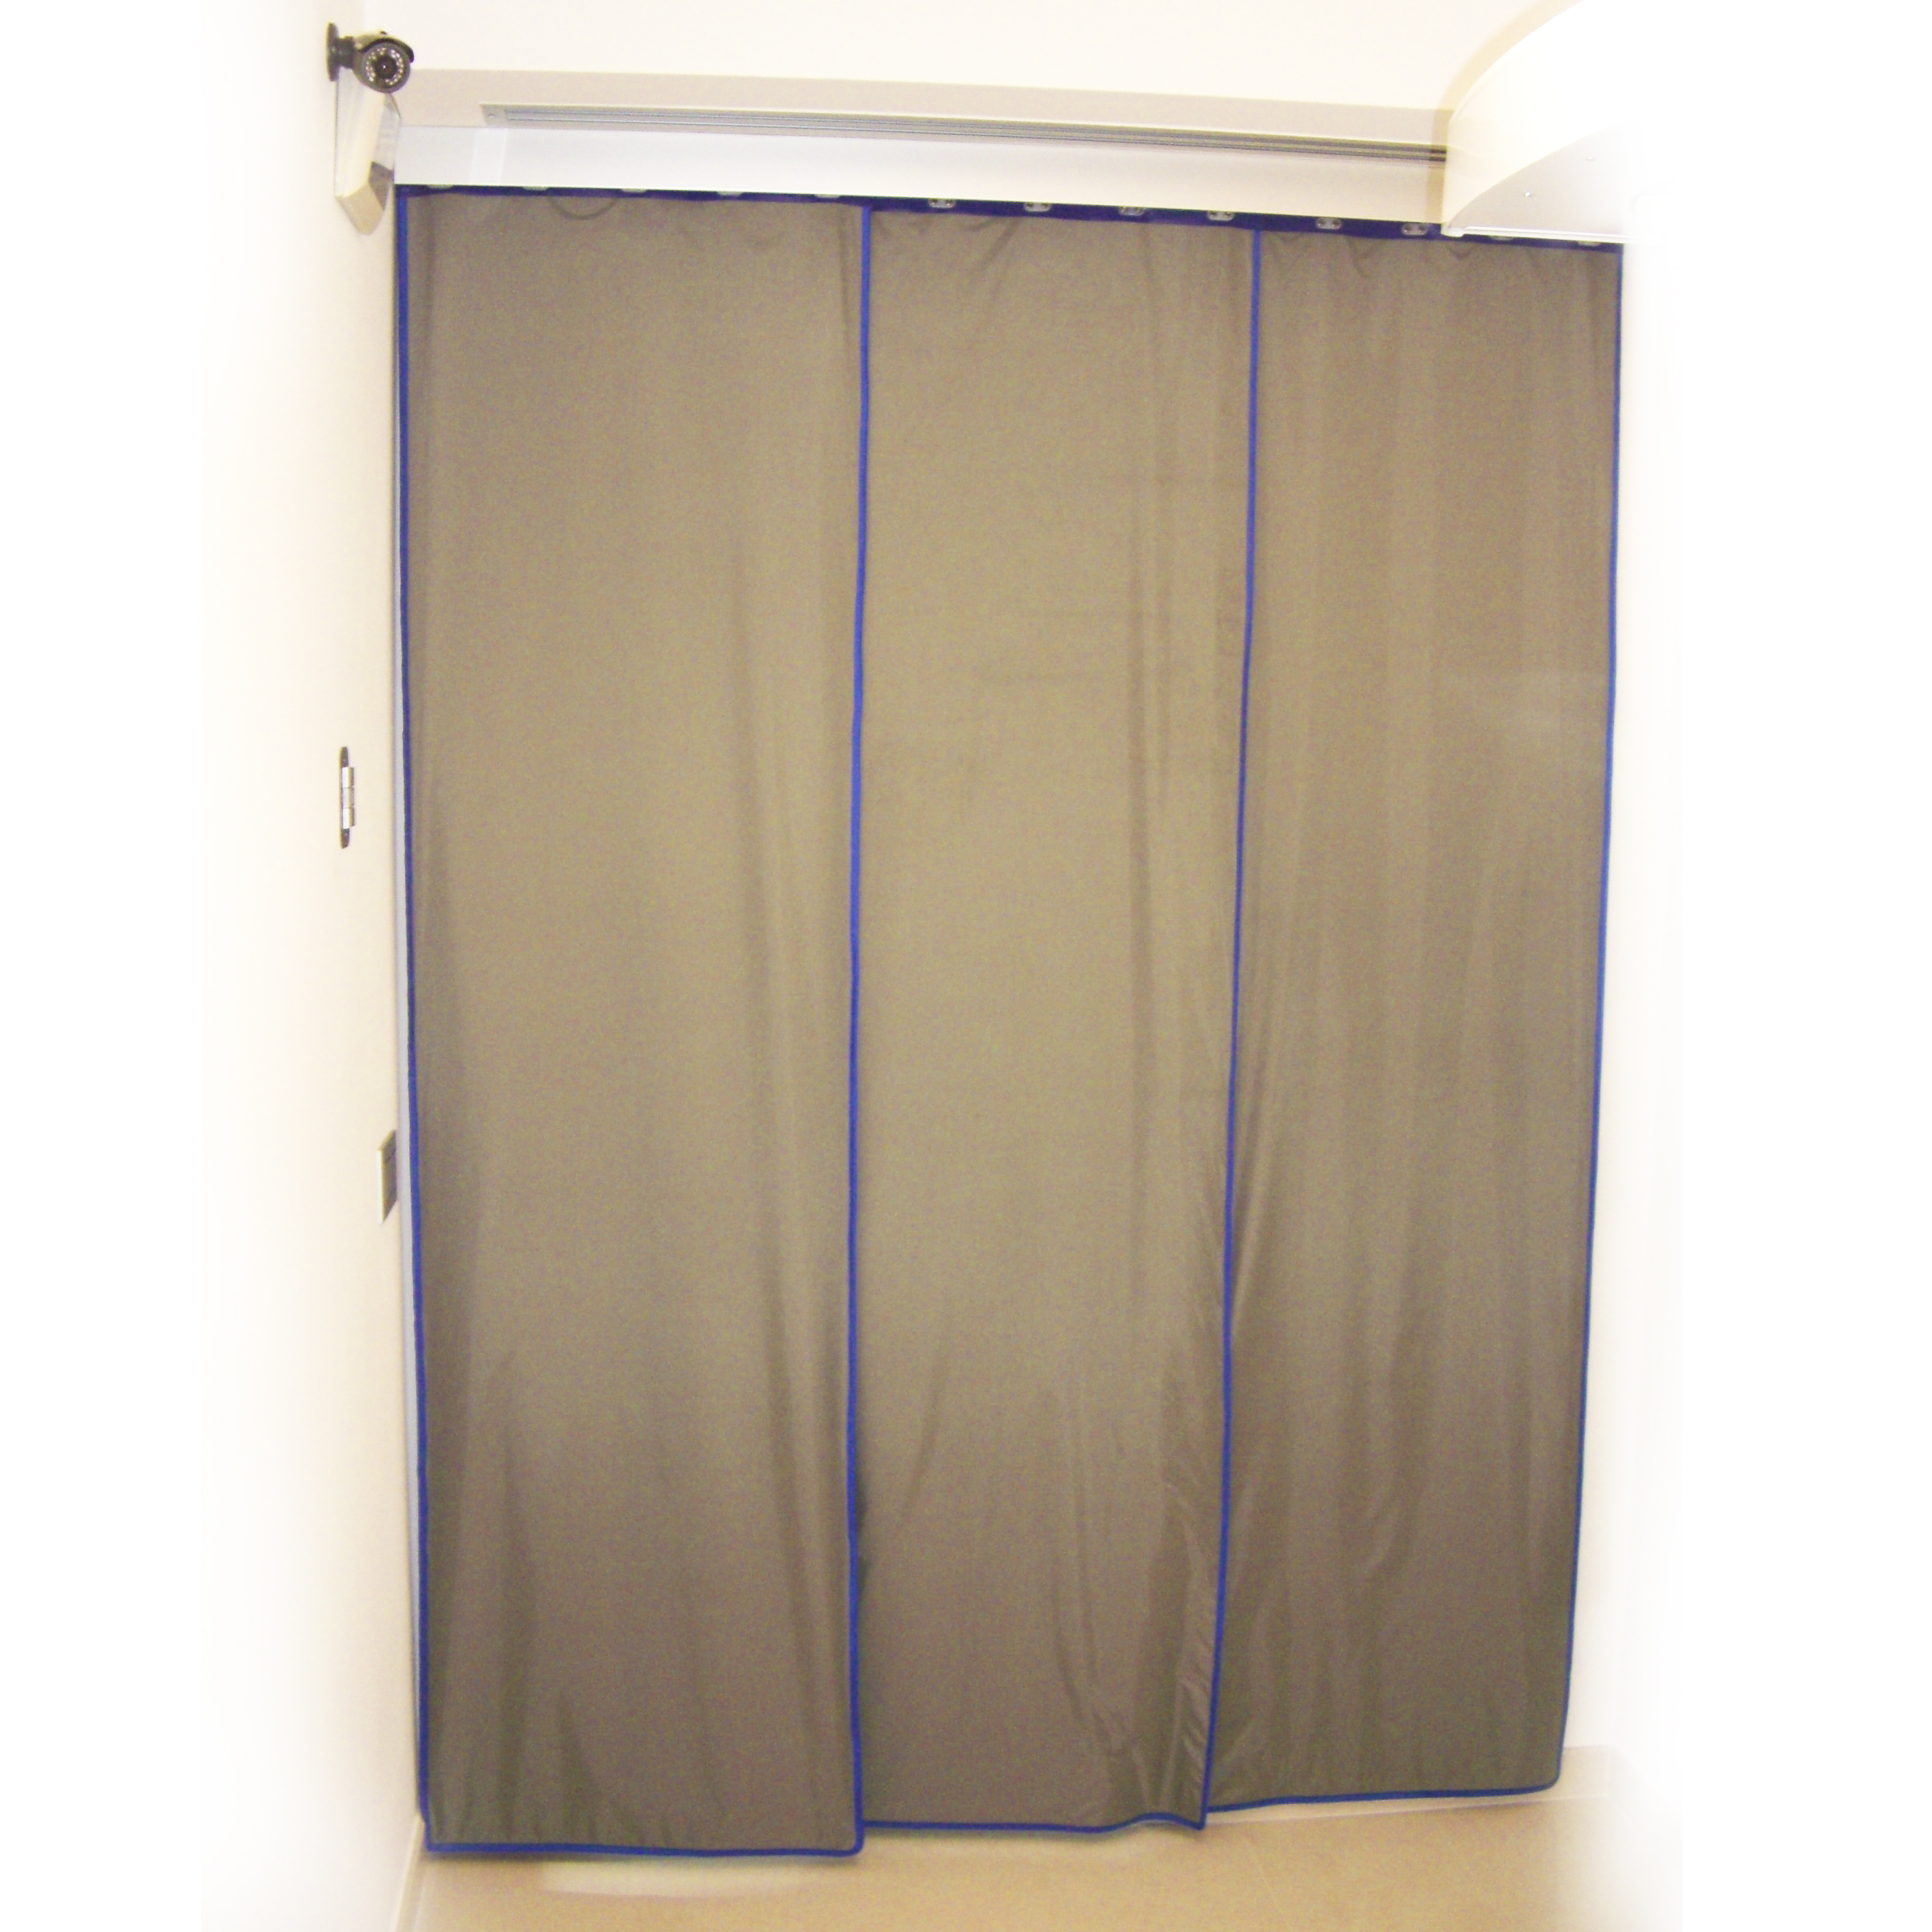 Lead Curtains Cablas